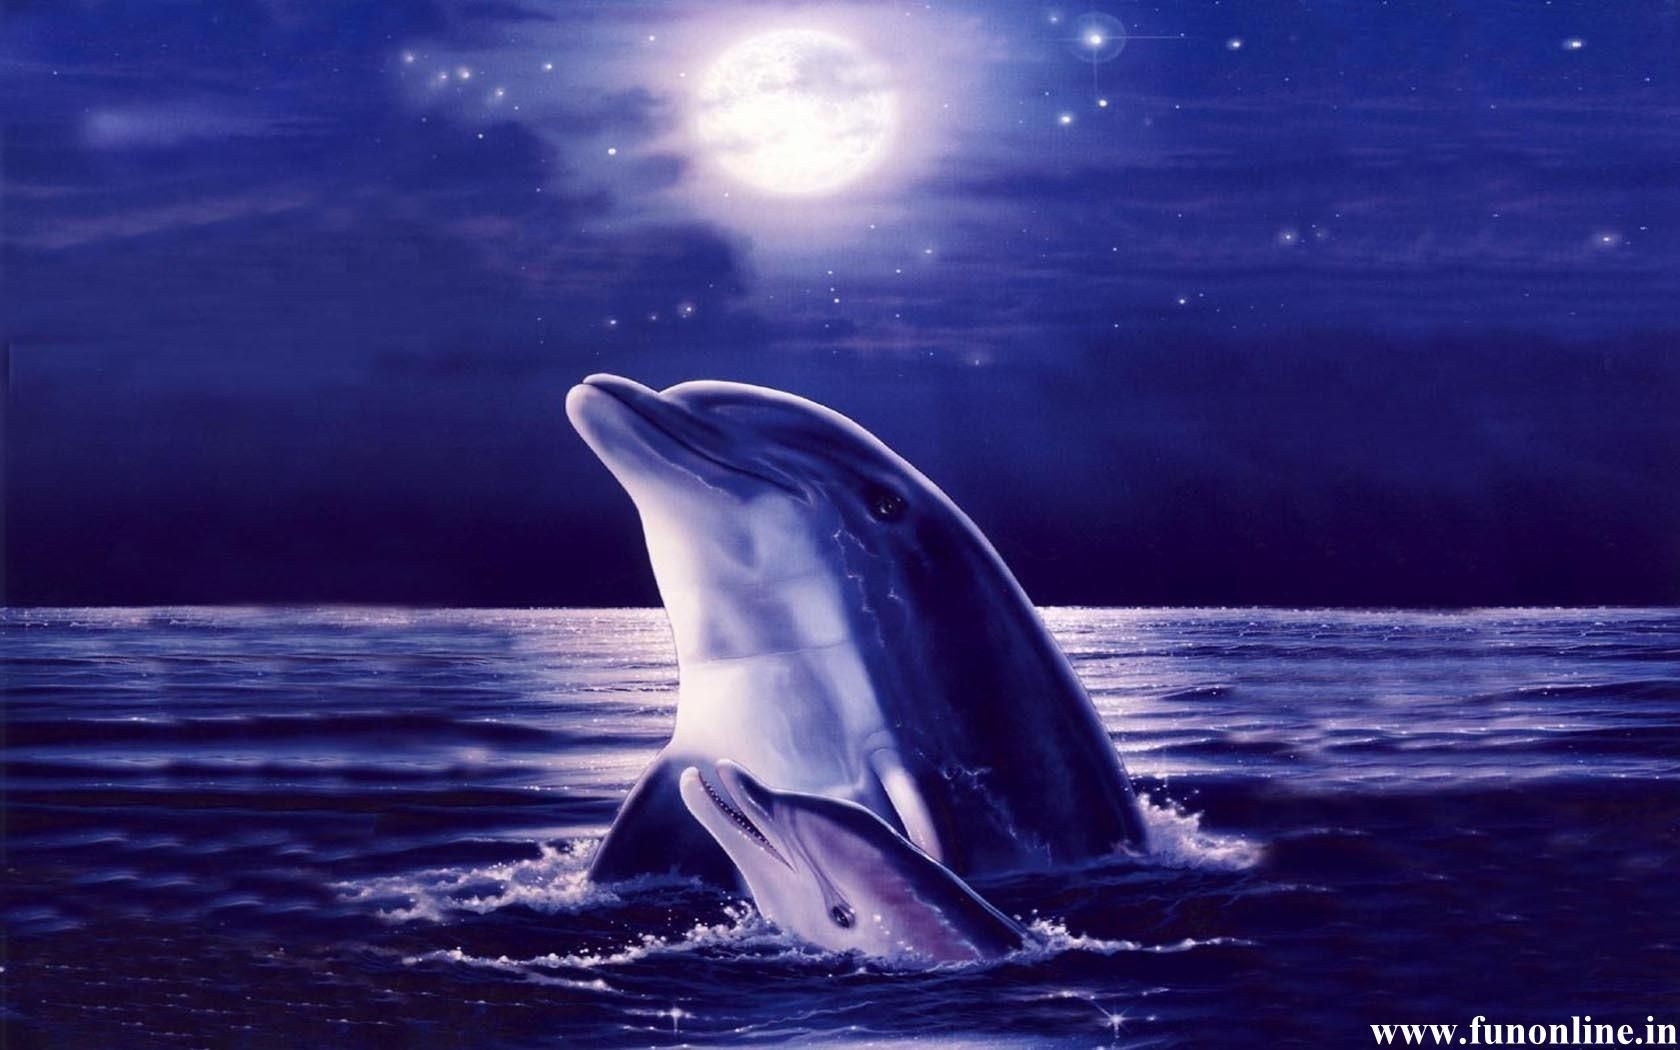 Animated New Moon Dolphin Wallpaper Jpg 1680 1050 Dolphin Images Dolphins Dolphin Art